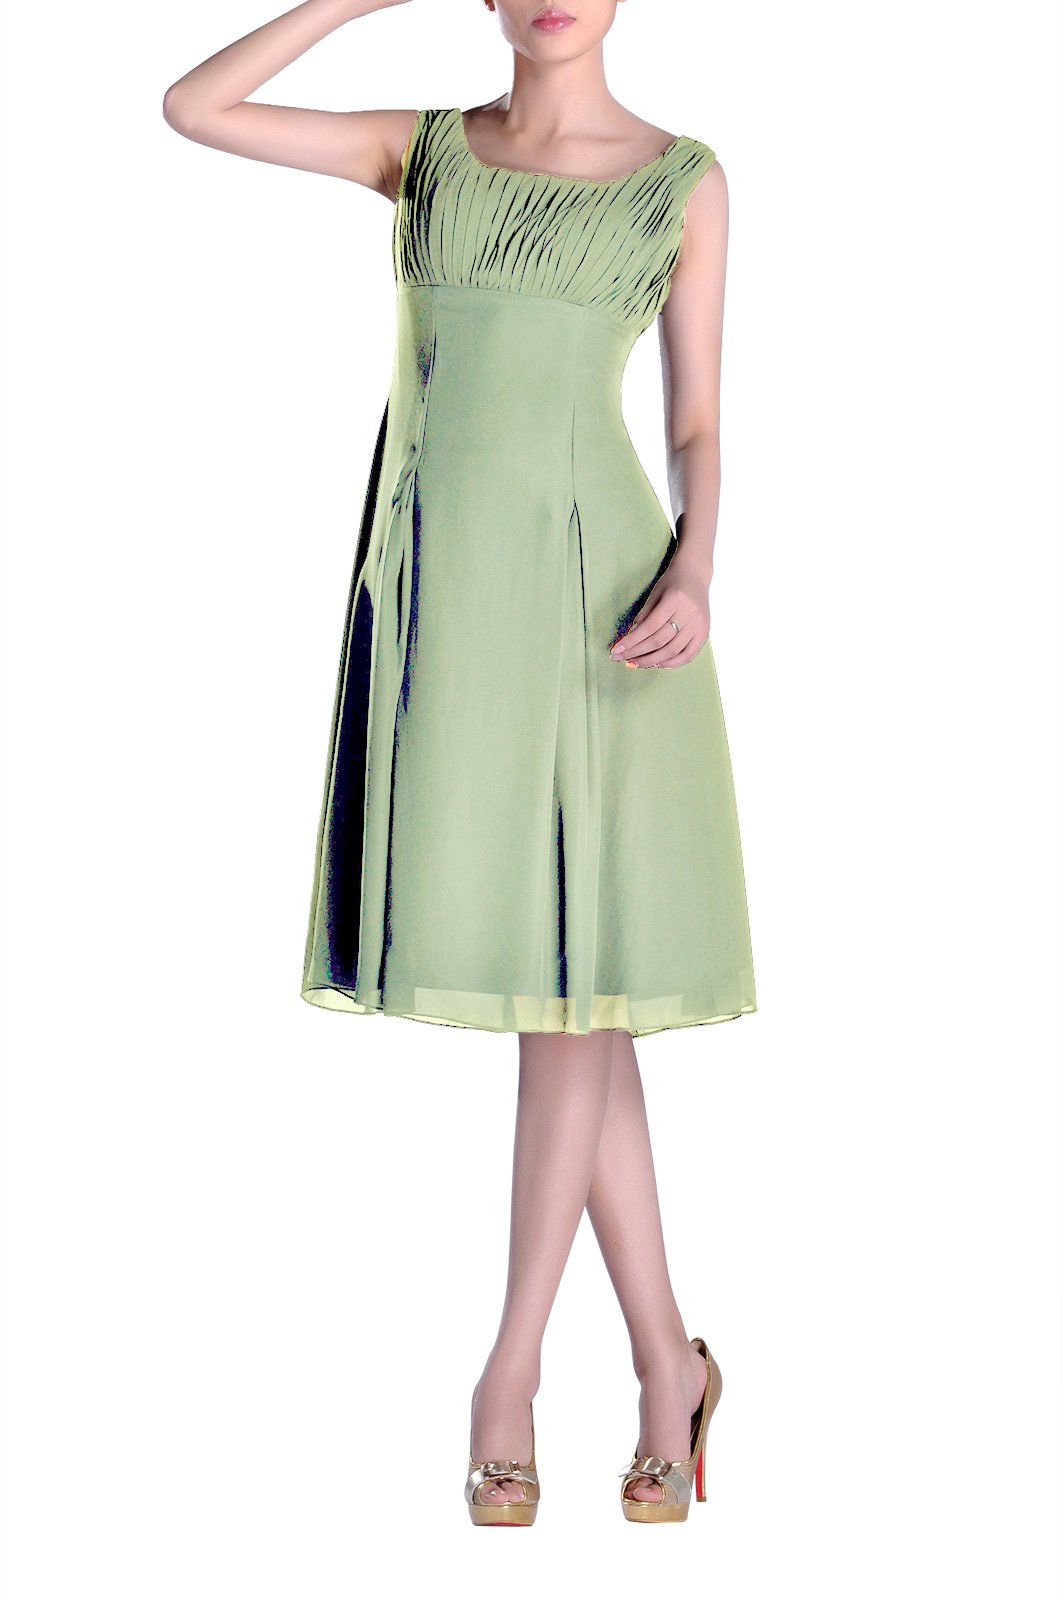 b8d972e07454f Bridesmaid Dress Knee Length Formal Pleated Mother of The Brides Special  Occasion, Color Sage,10